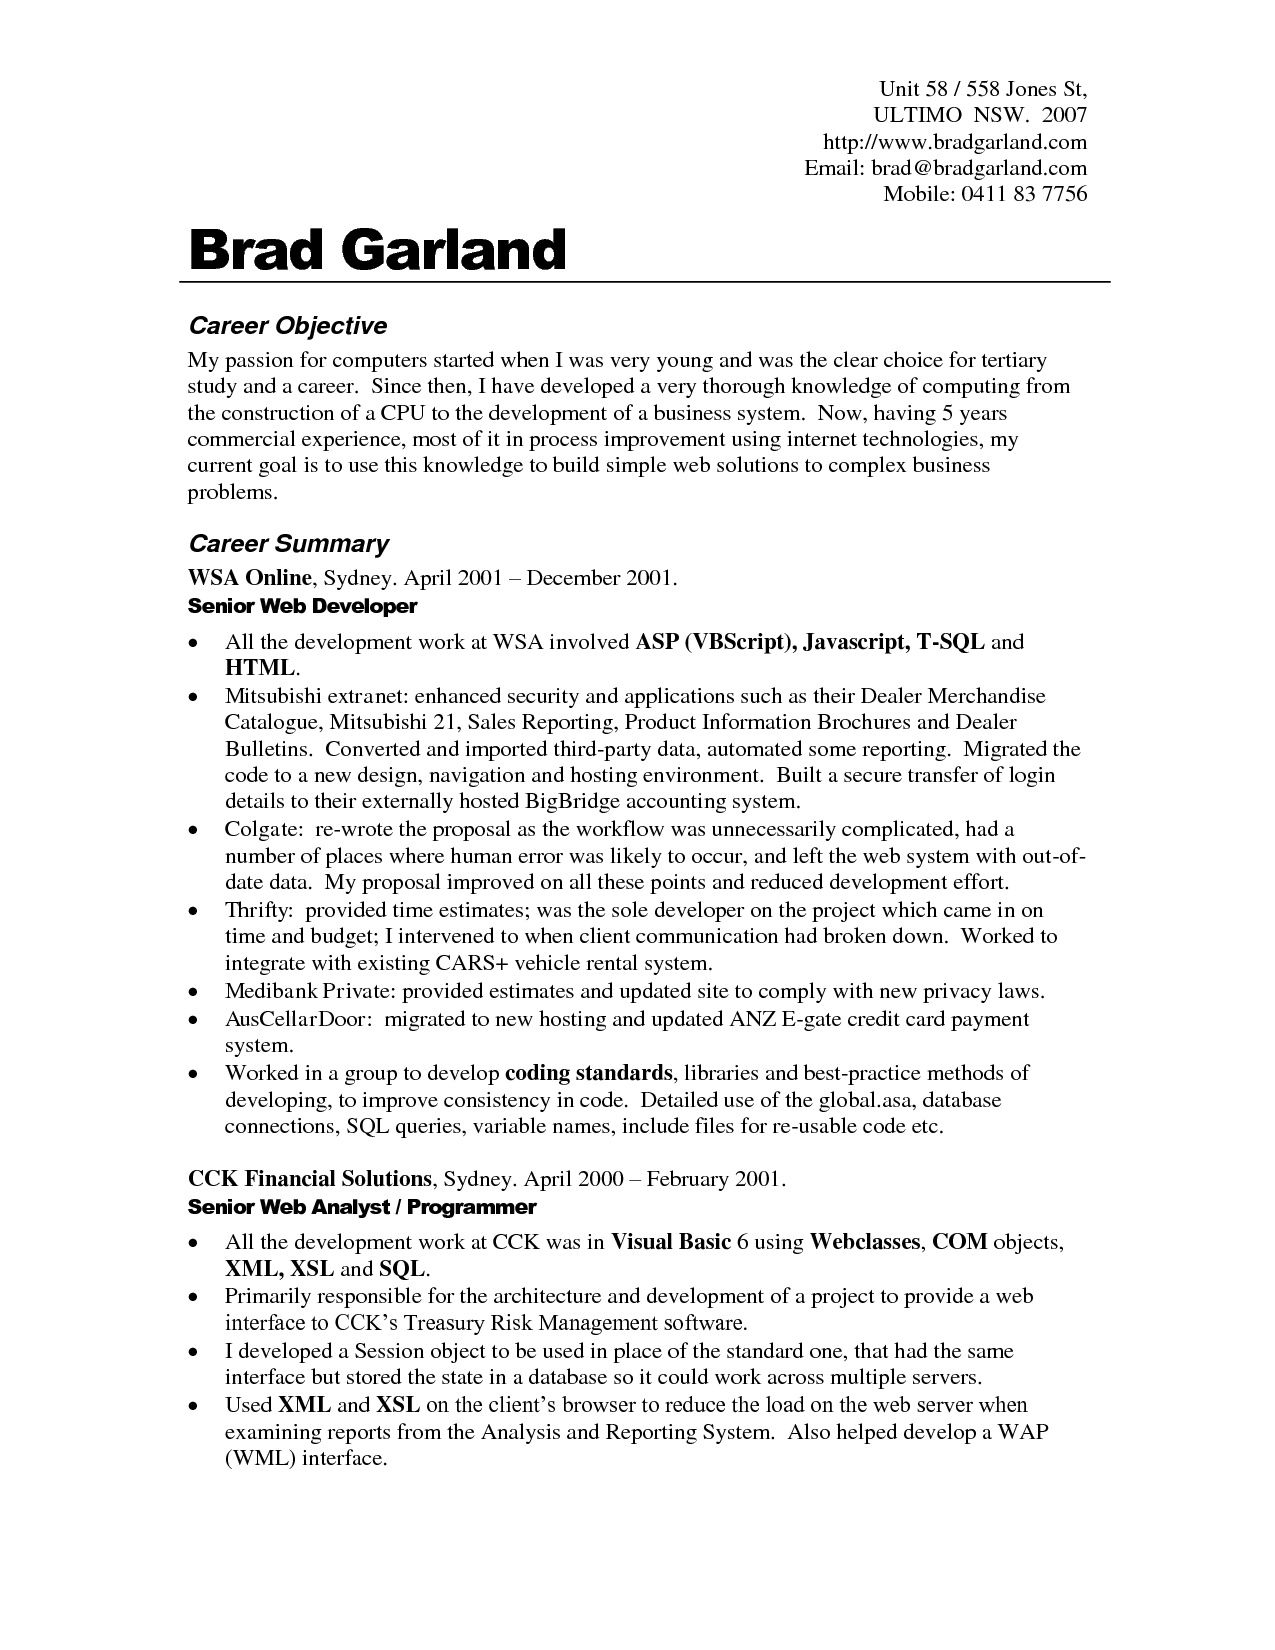 Career Goals In Resume Career Objective Resume Examples For Example Your Training